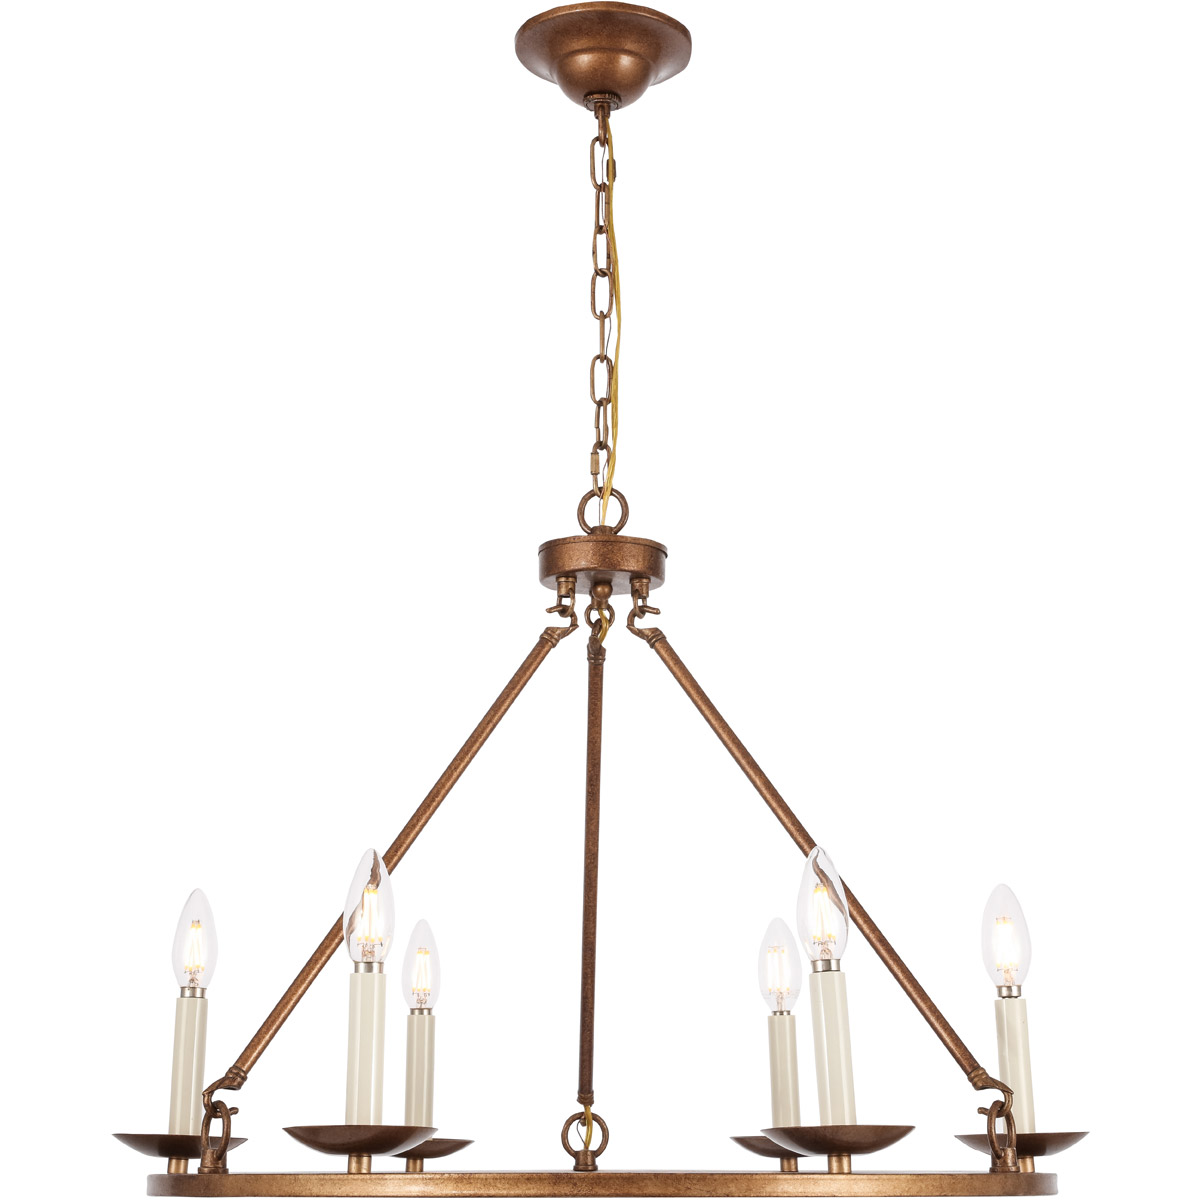 Chandelier Vintage Gold Dining Living Room Kitchen Cottage Country 6 Light 26 Ebay,2 Bedroom Affordable Cheap Apartments For Rent Near Me